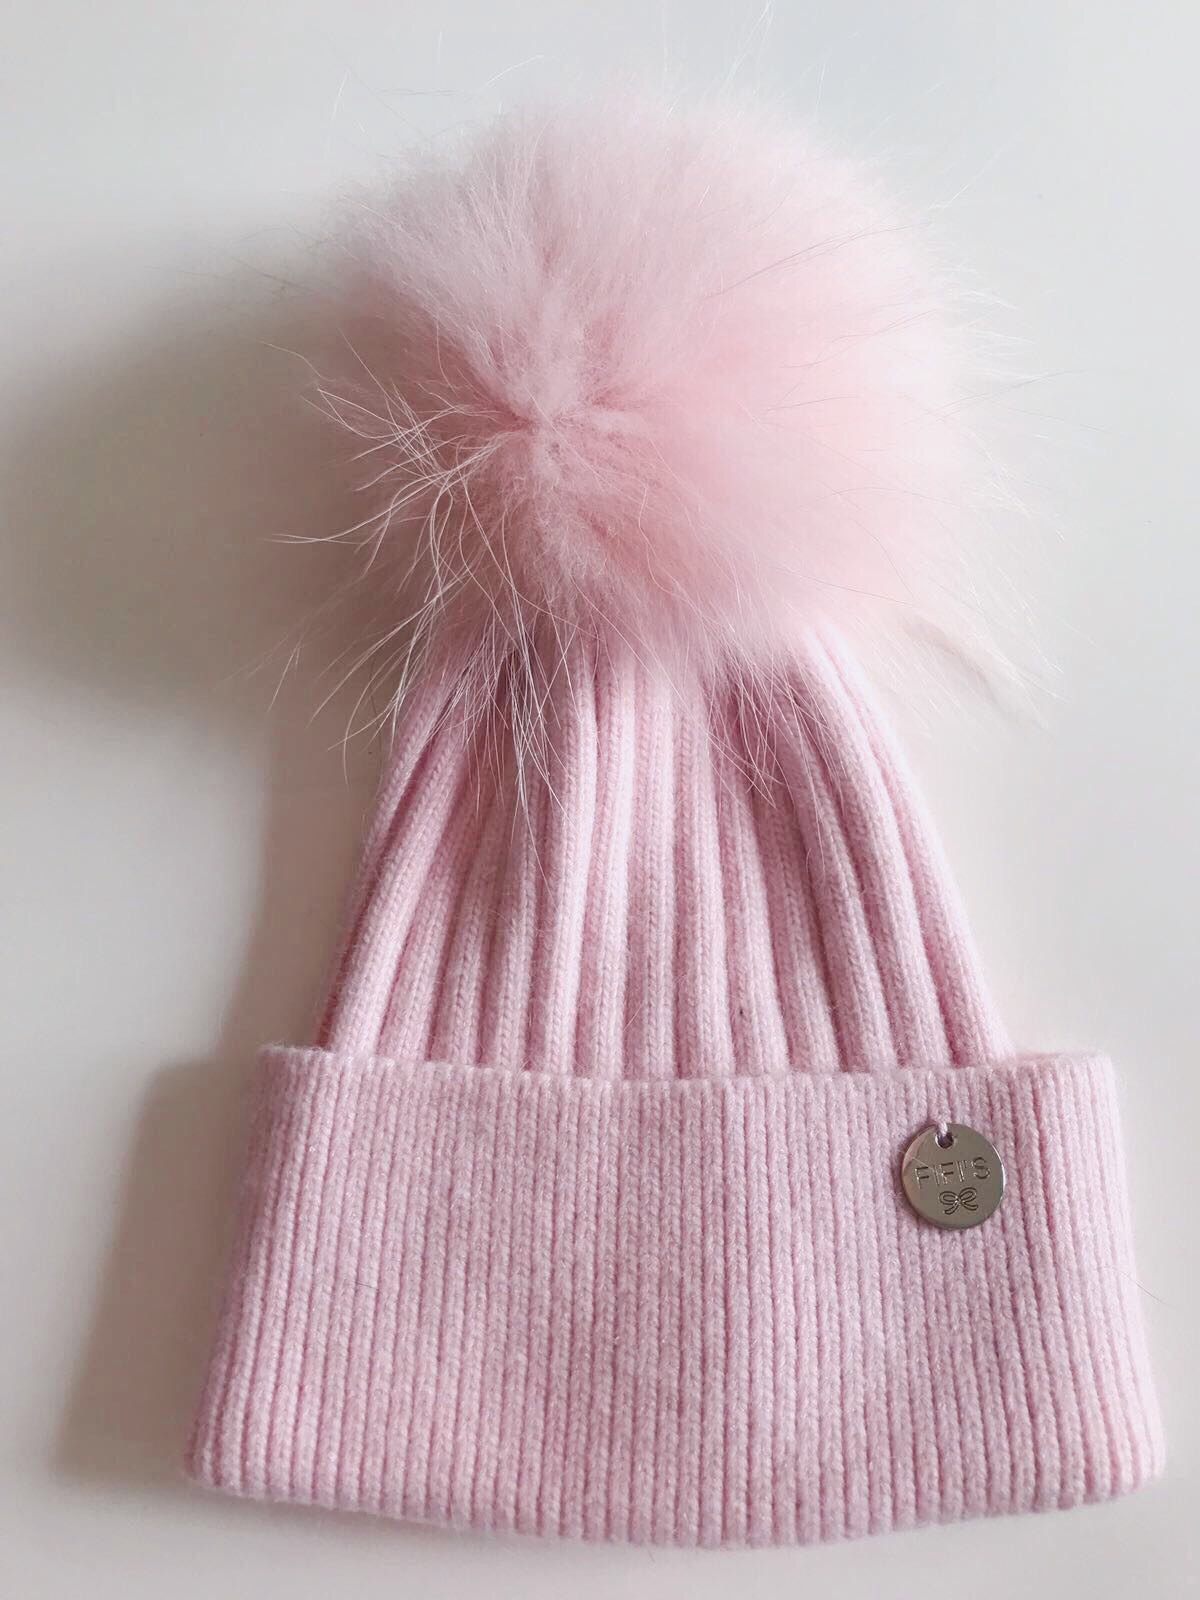 Cashmere single - Baby pink with matching pom